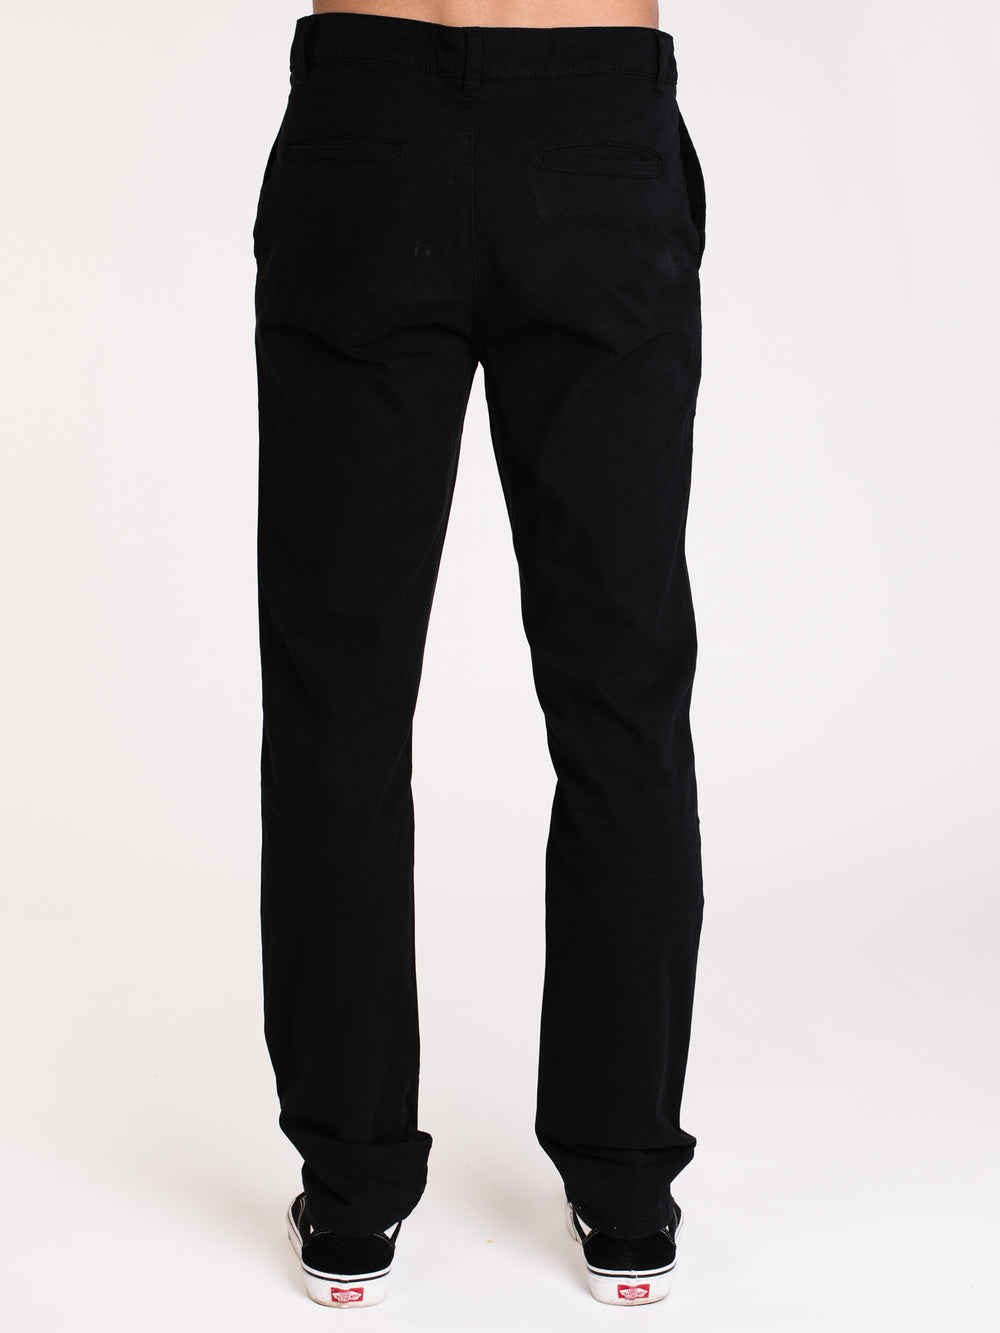 MENS SPRING SLIM CHINO - BLACK